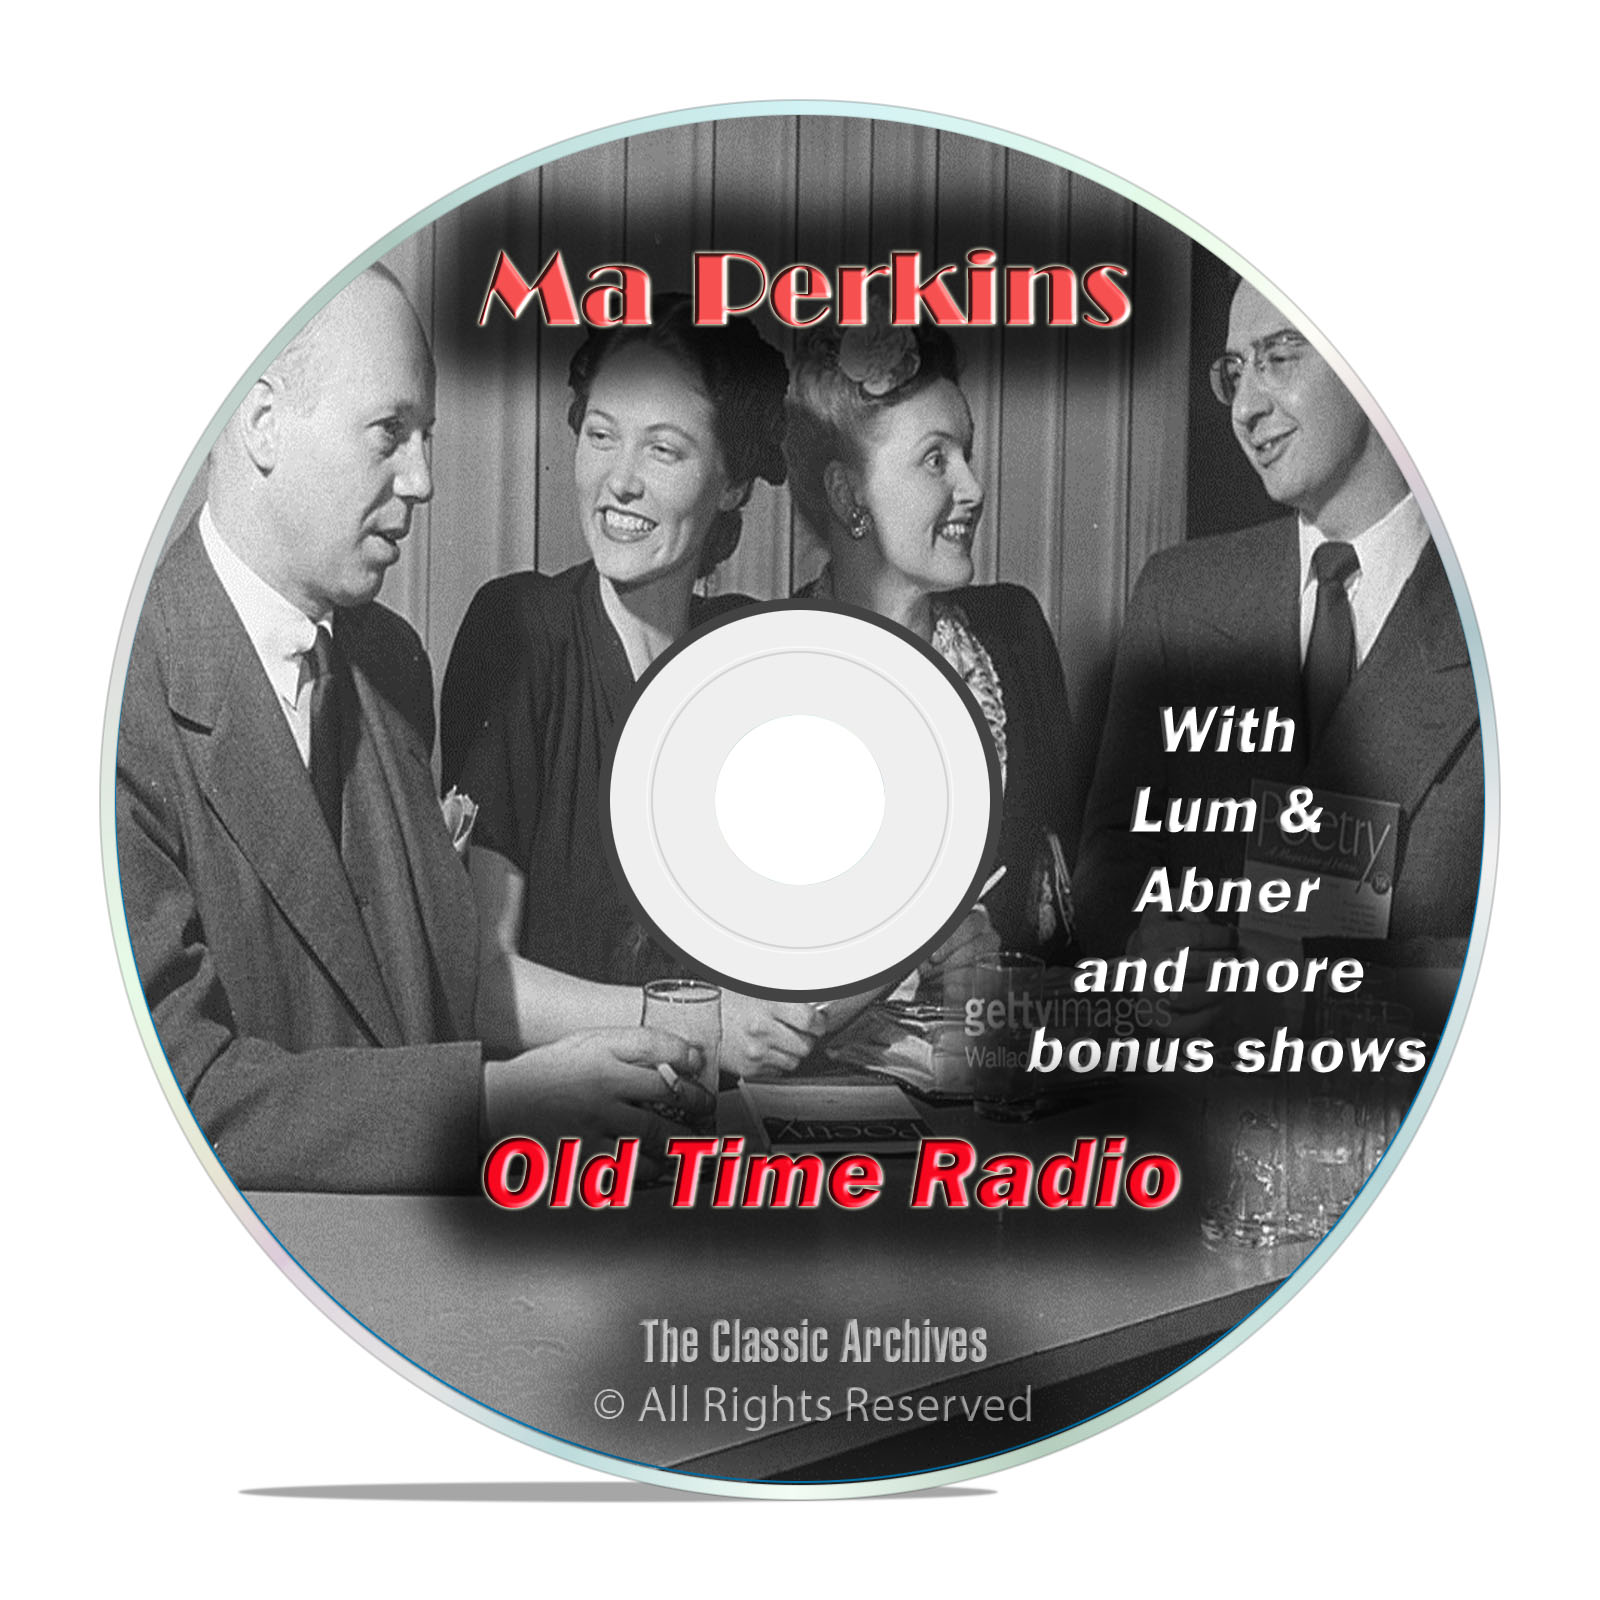 Ma Perkins, 1,854 Episodes Old Time Radio, Complete Set, Comedy OTR DVD MP3